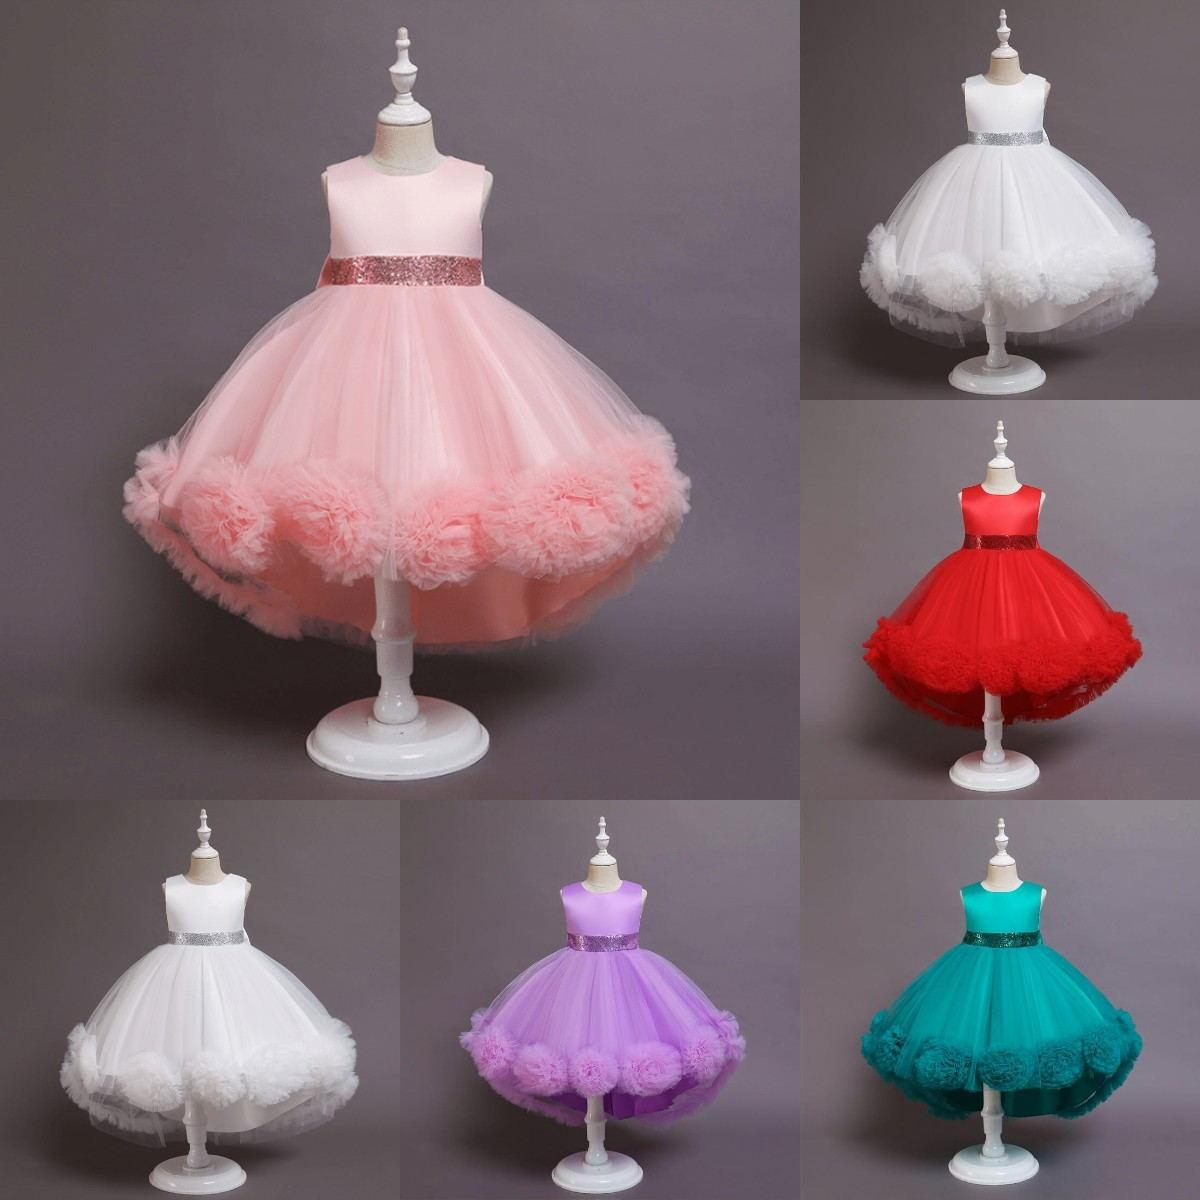 5 Colors In Stock Flower Girls Dresses with Sequins Belt Handmade Flowers Pageant Dress for Little Girl Ready to Wear